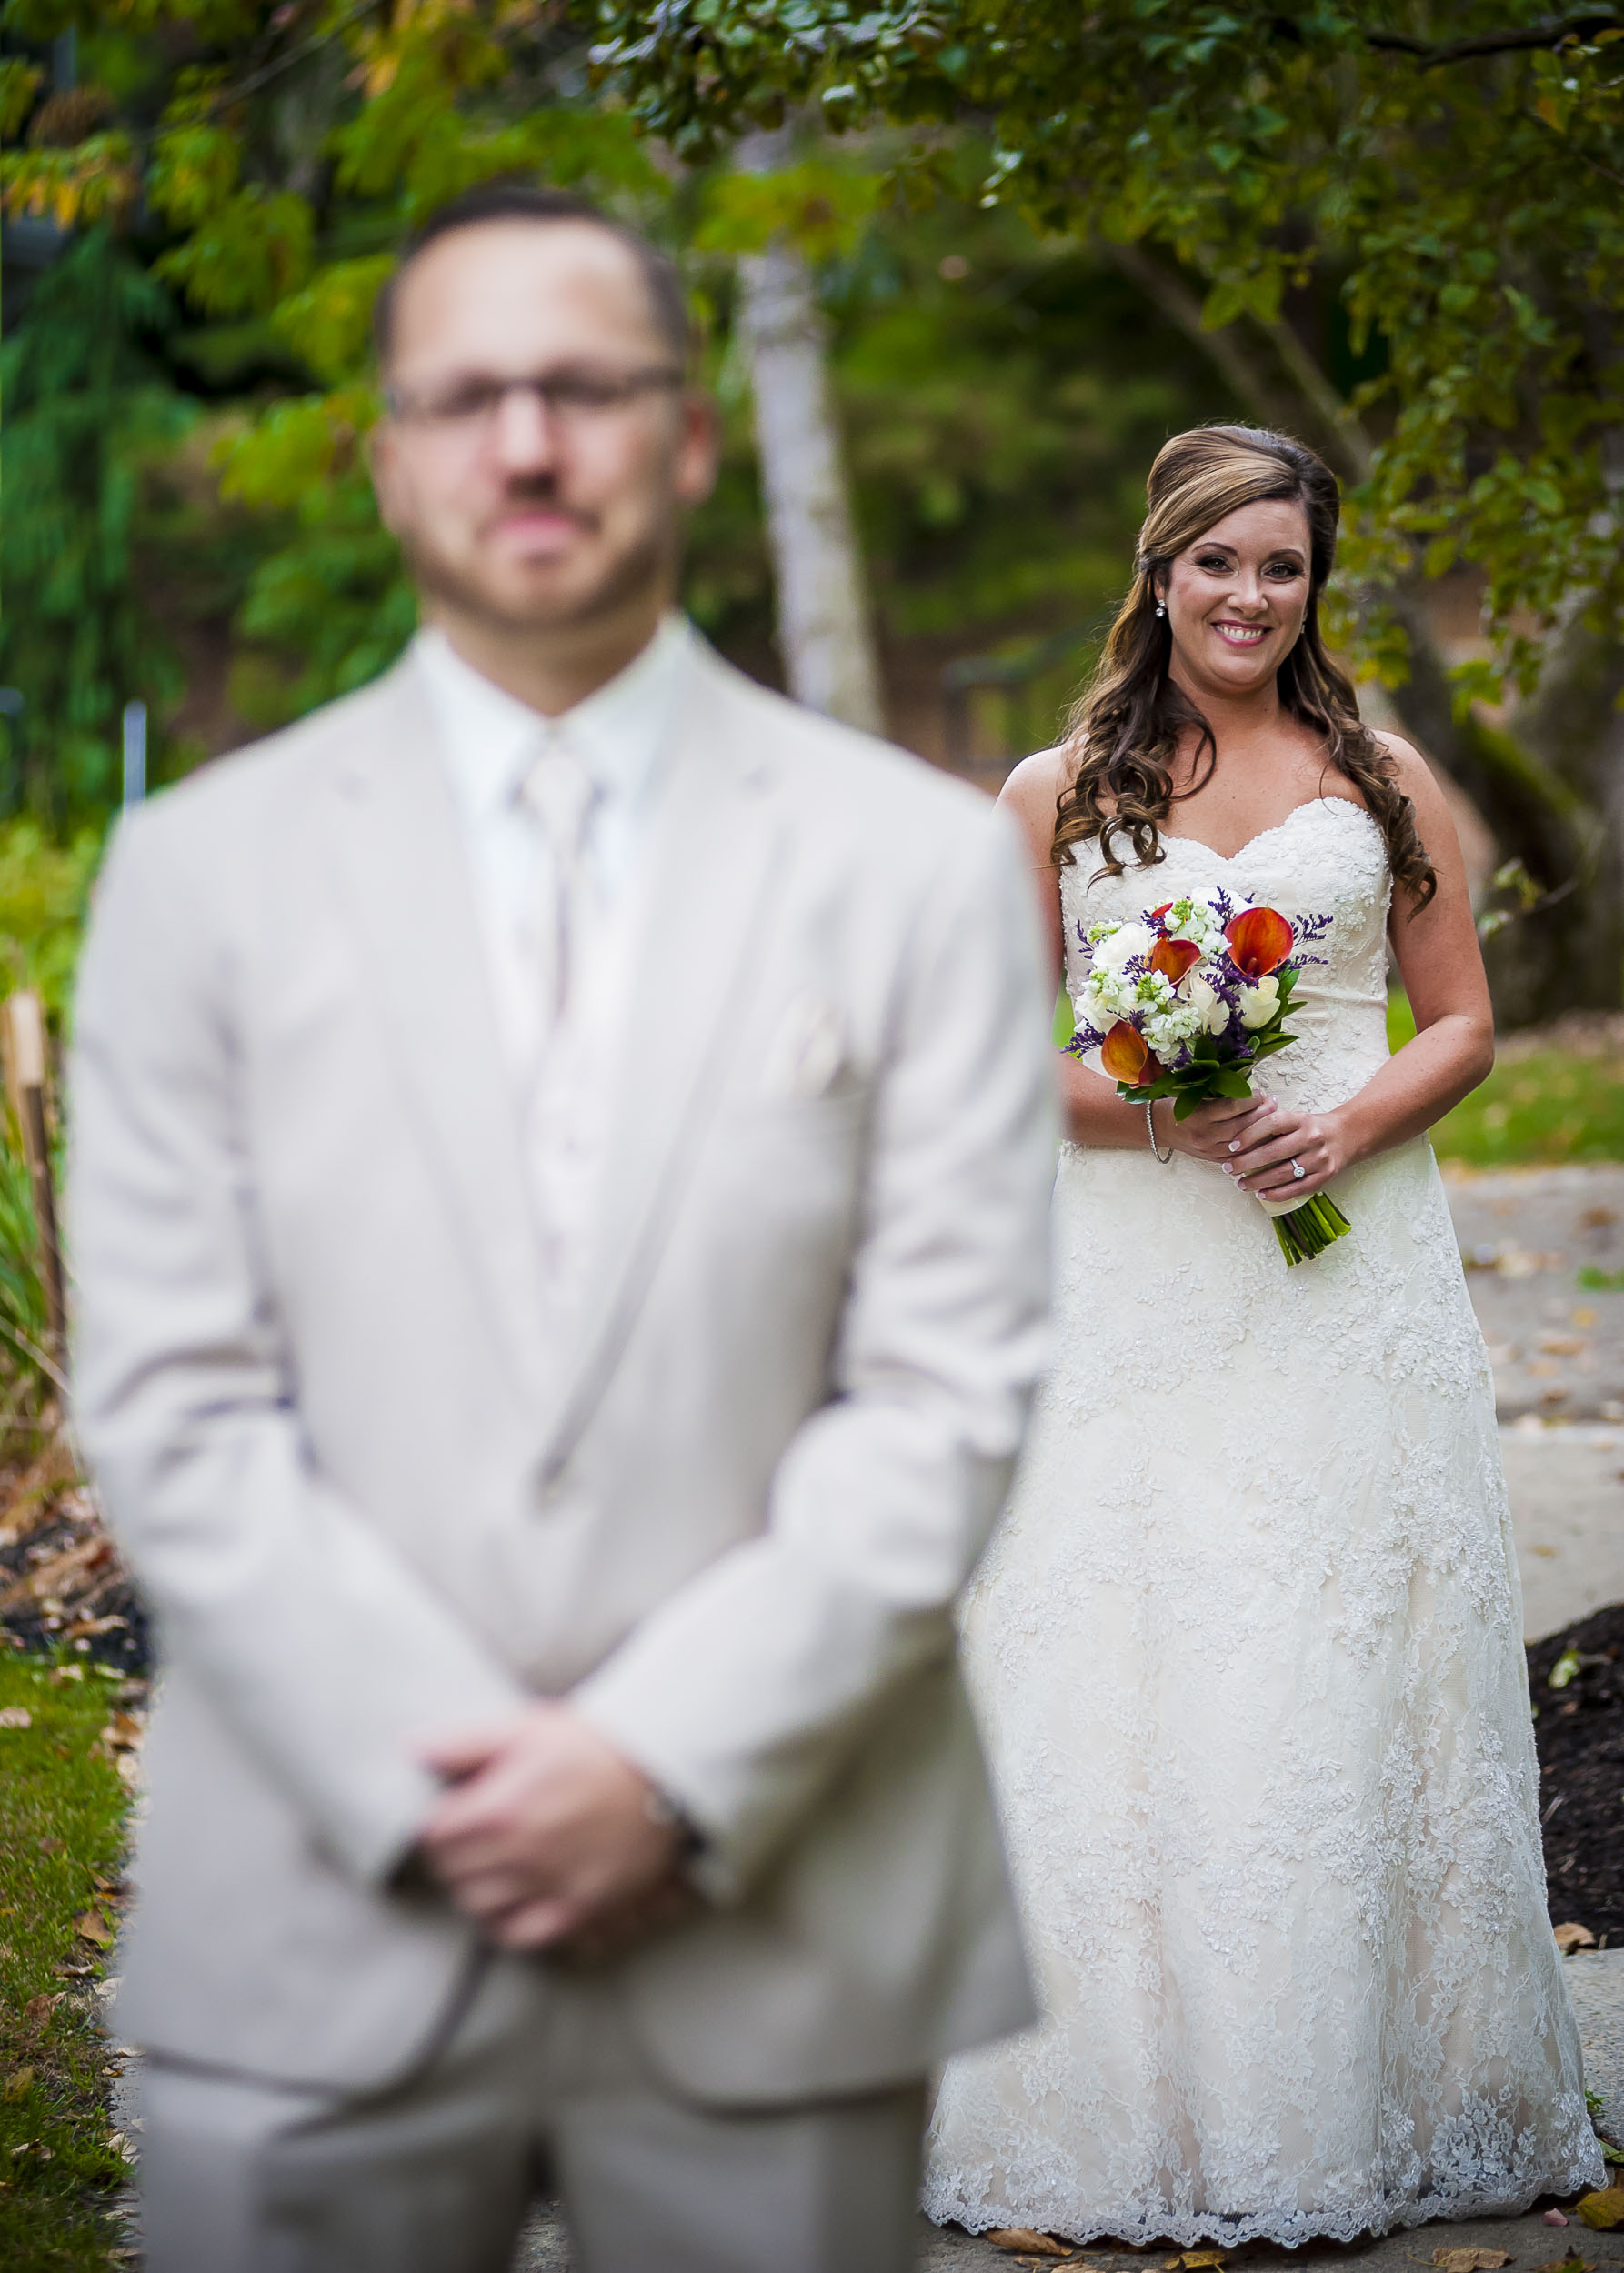 Love how the happy the bride looks.